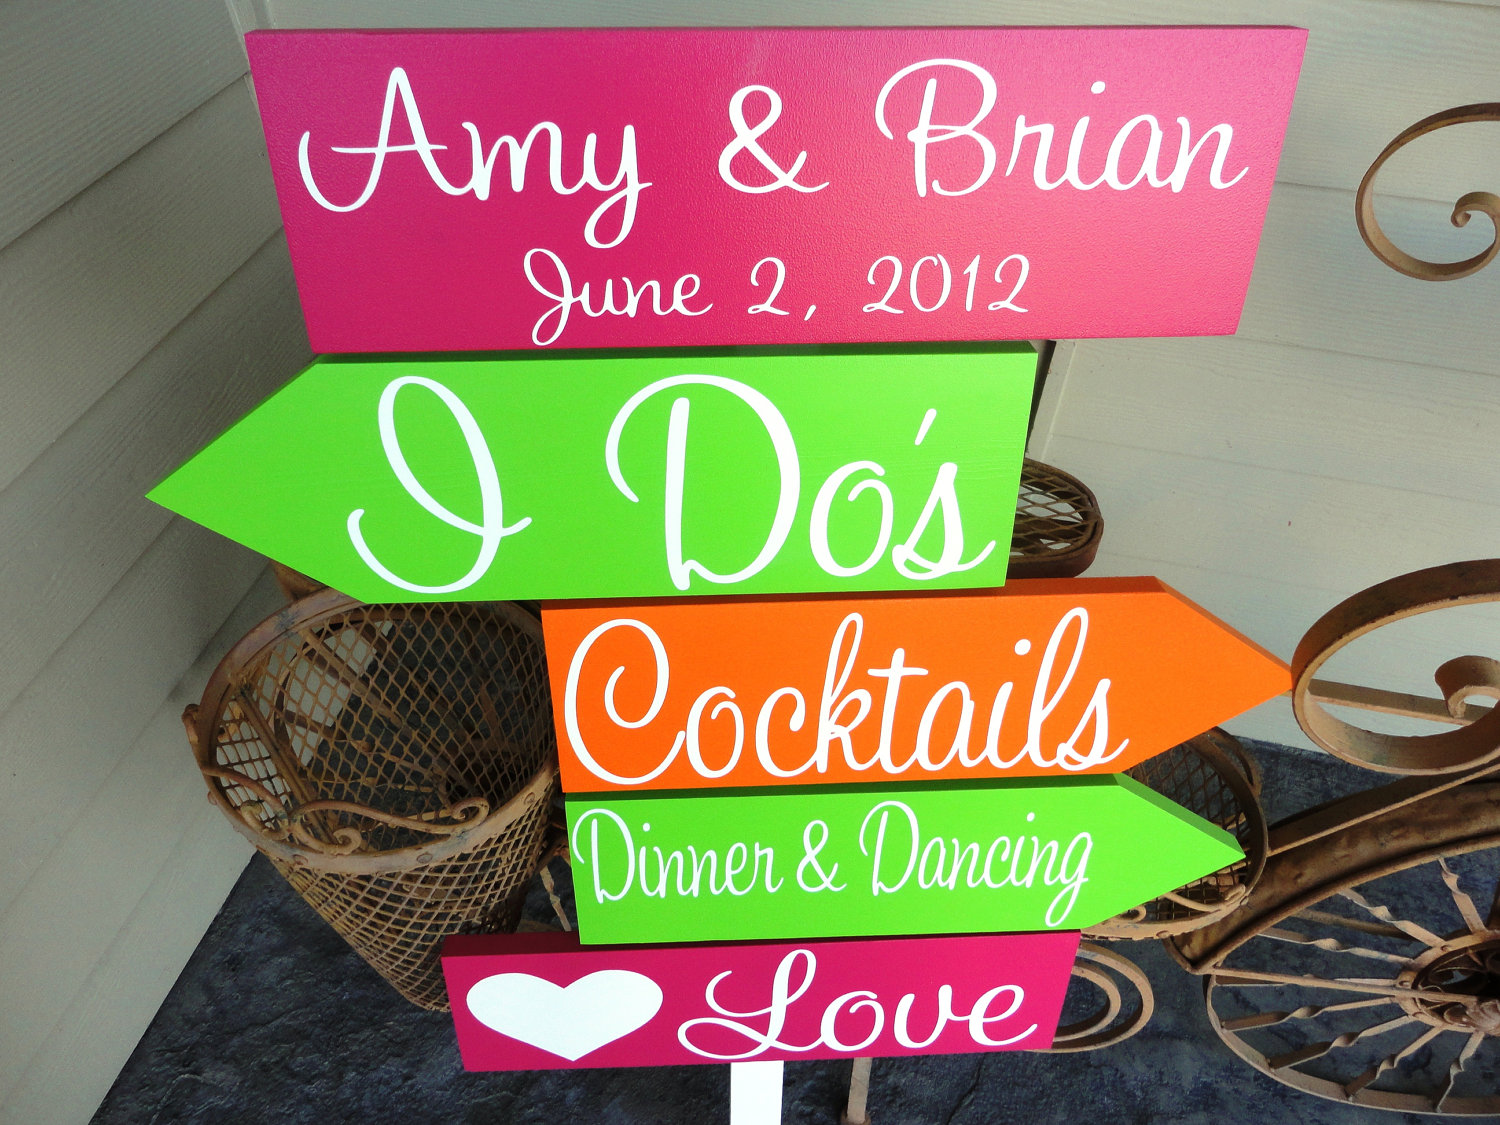 Personalized-wedding-details-ceremony-reception-signs-on-etsy-neon.original